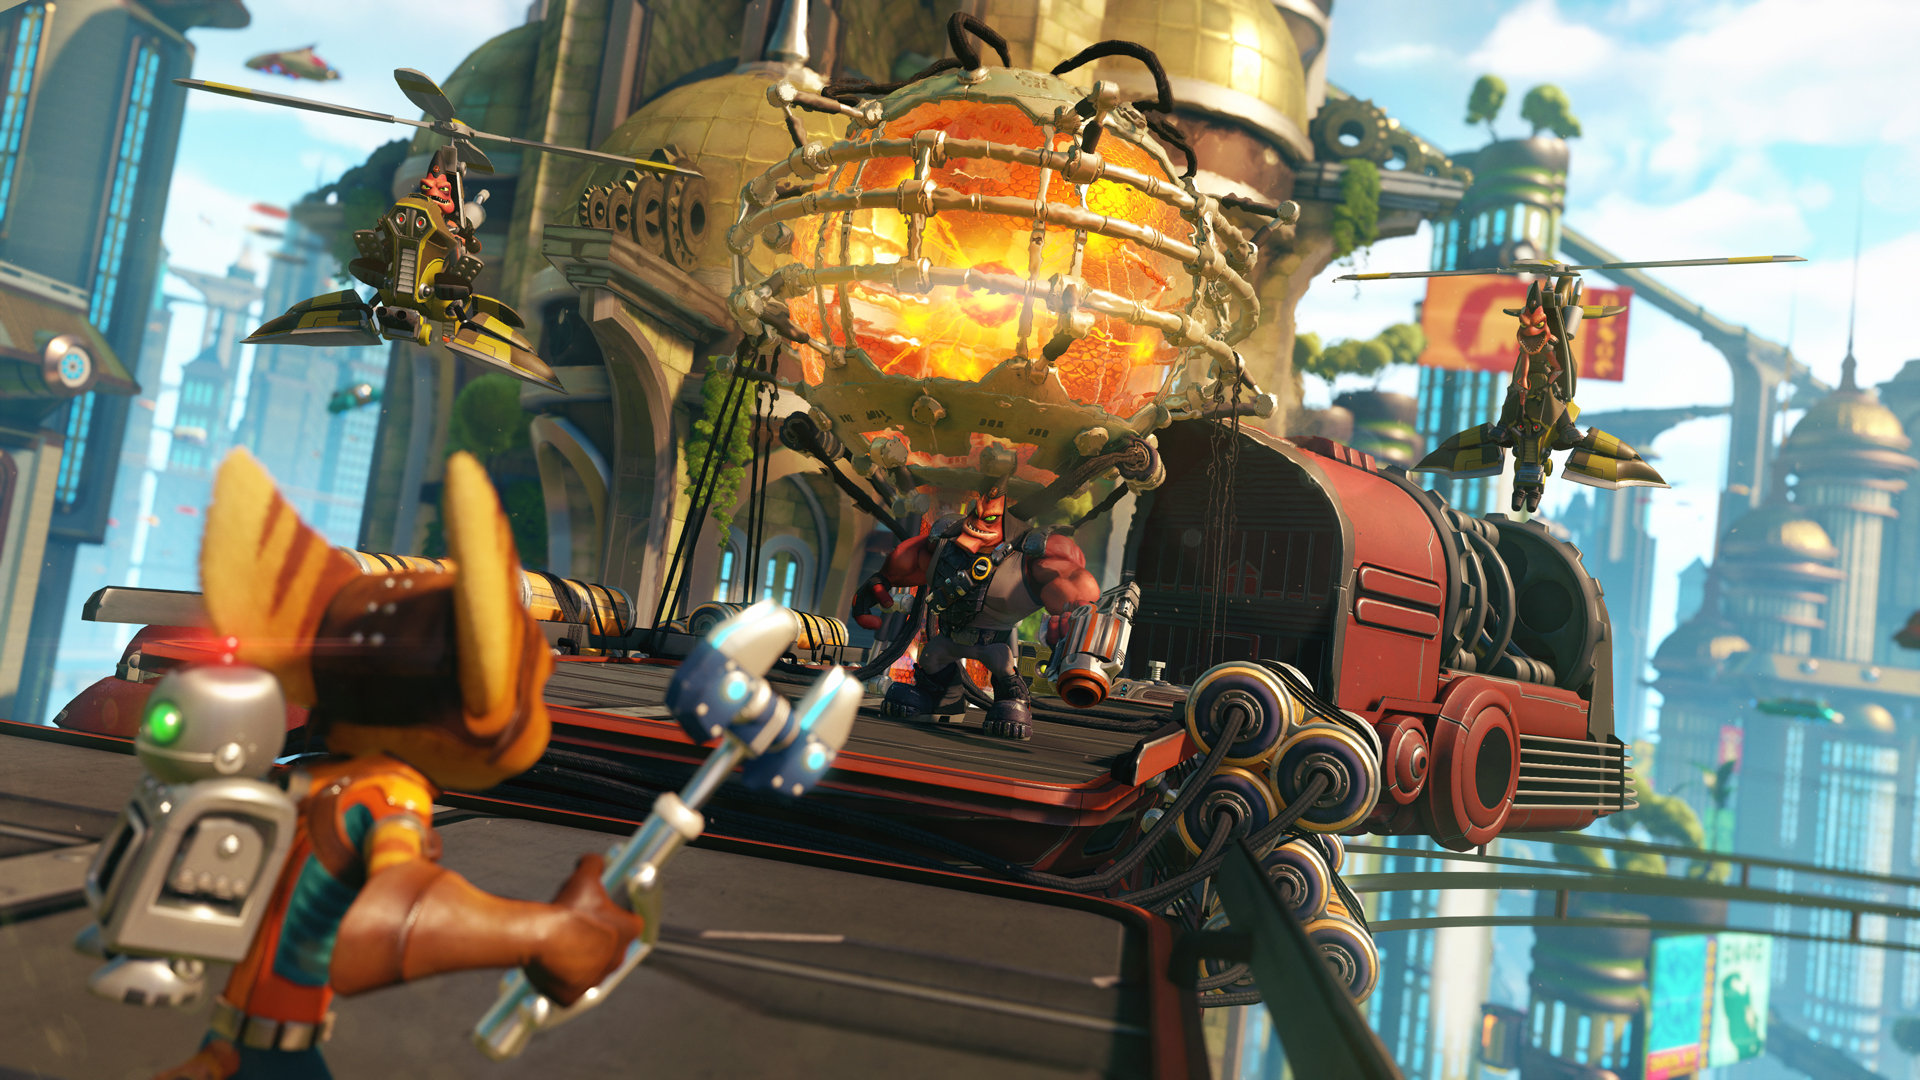 ratchet-and-clank-screenshot-04-psv-us-1